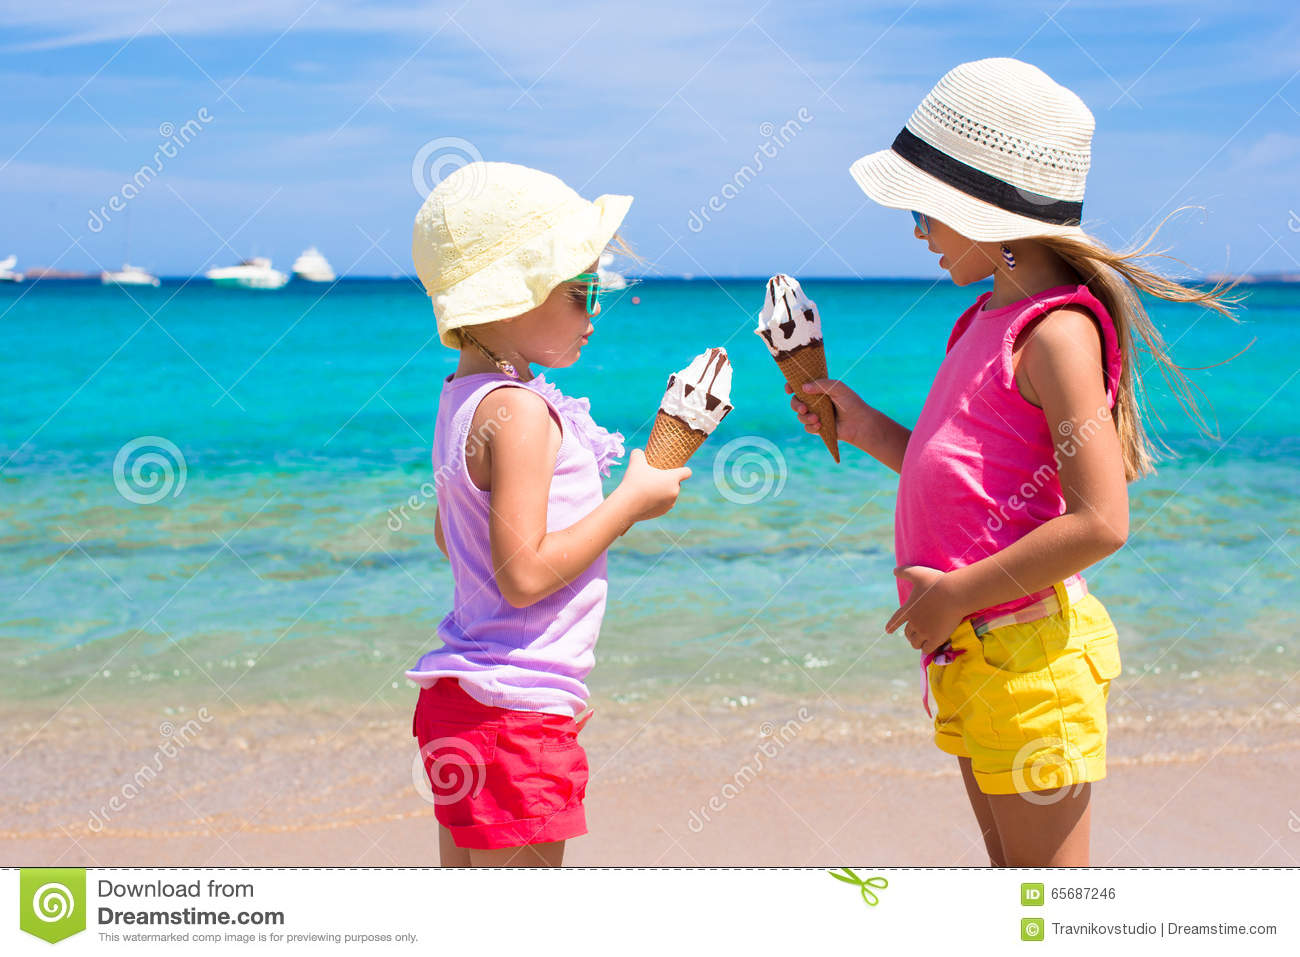 Happy Little Girls Eating Ice Cream Over Summer Beach Background People Children Friends And Friendship Concept Stock Photo 65687246